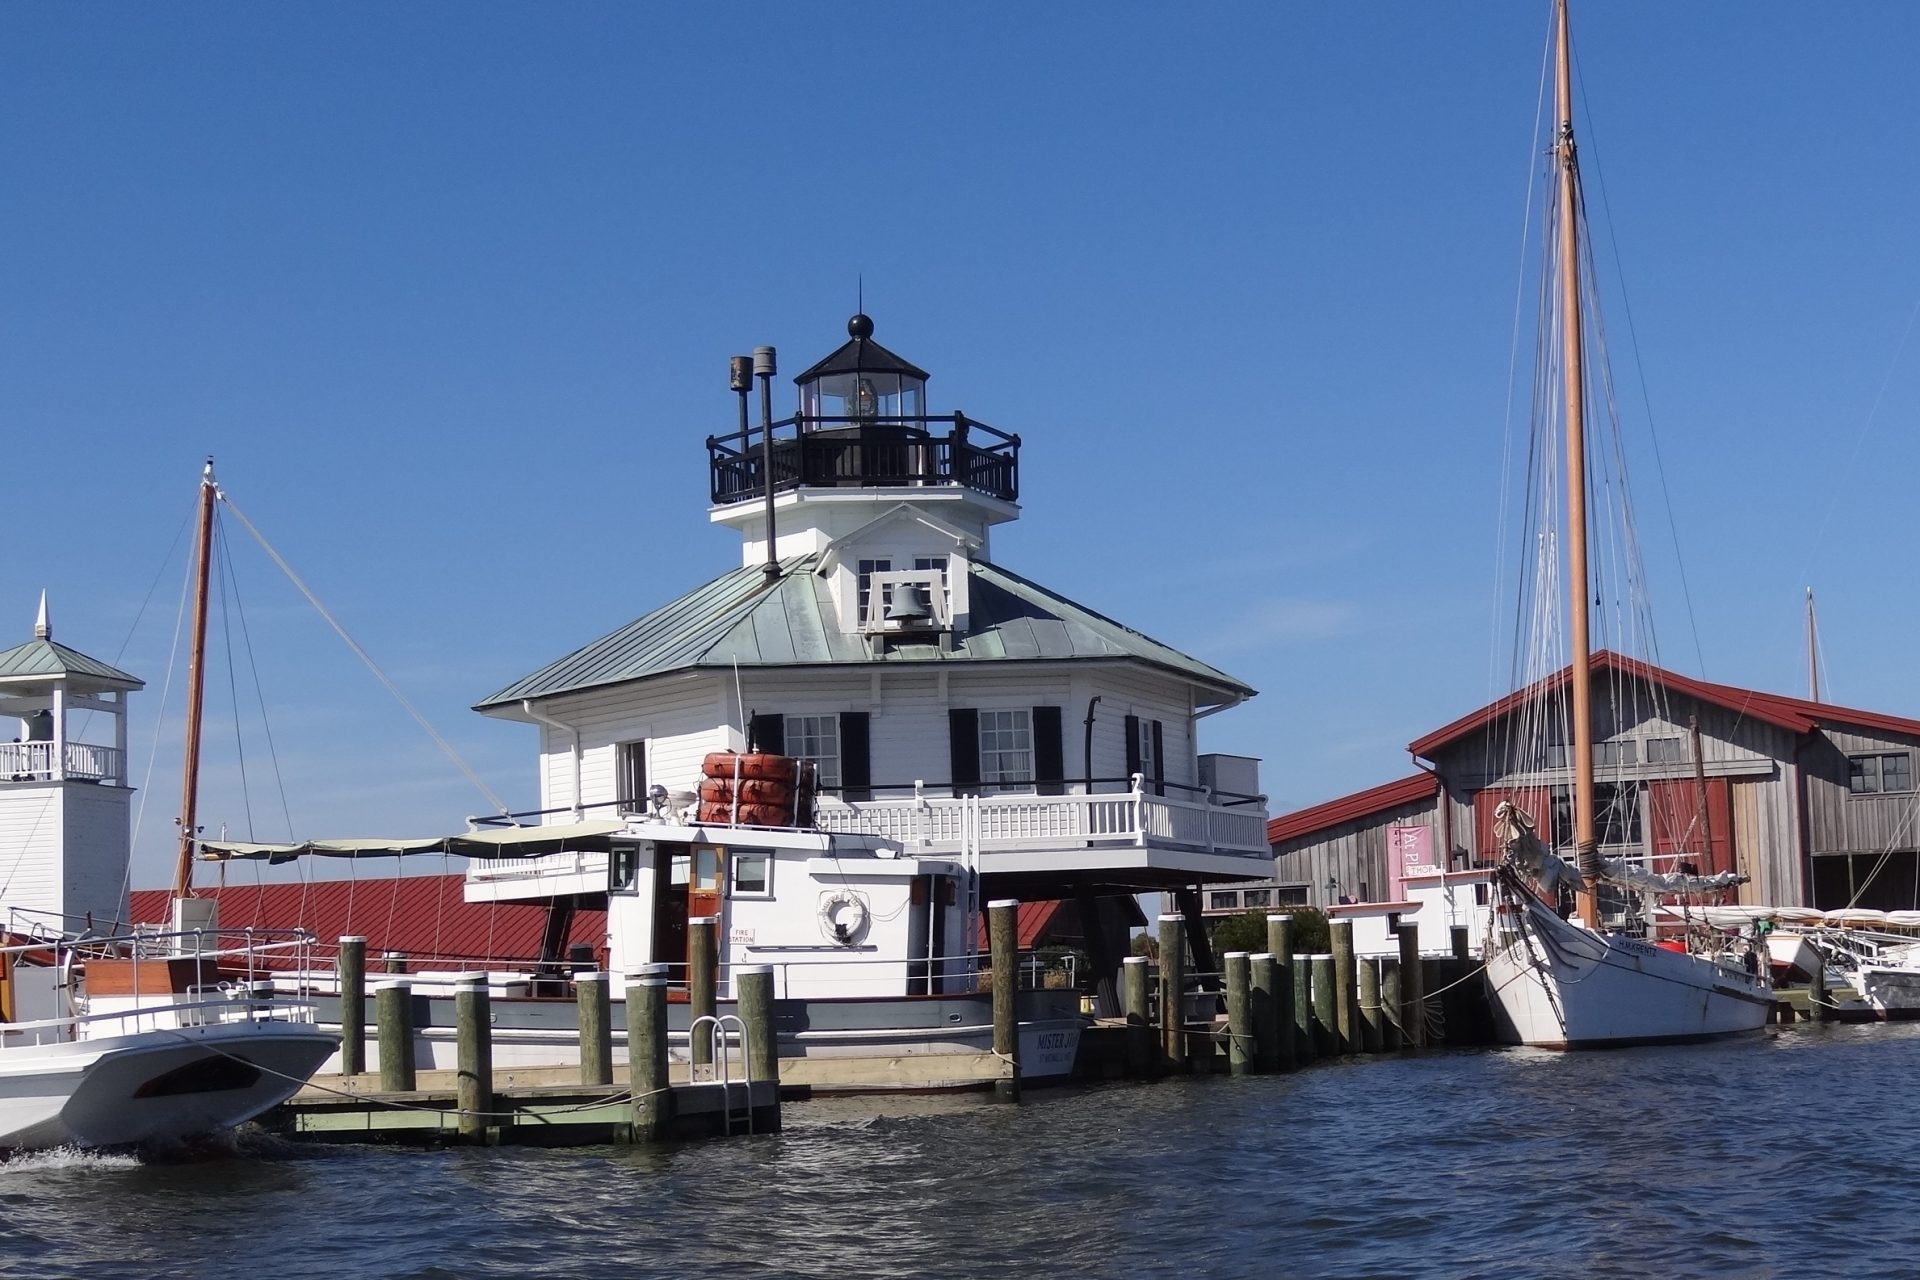 Chesapeake Bay Maritime Museum, Oxford, Maryland